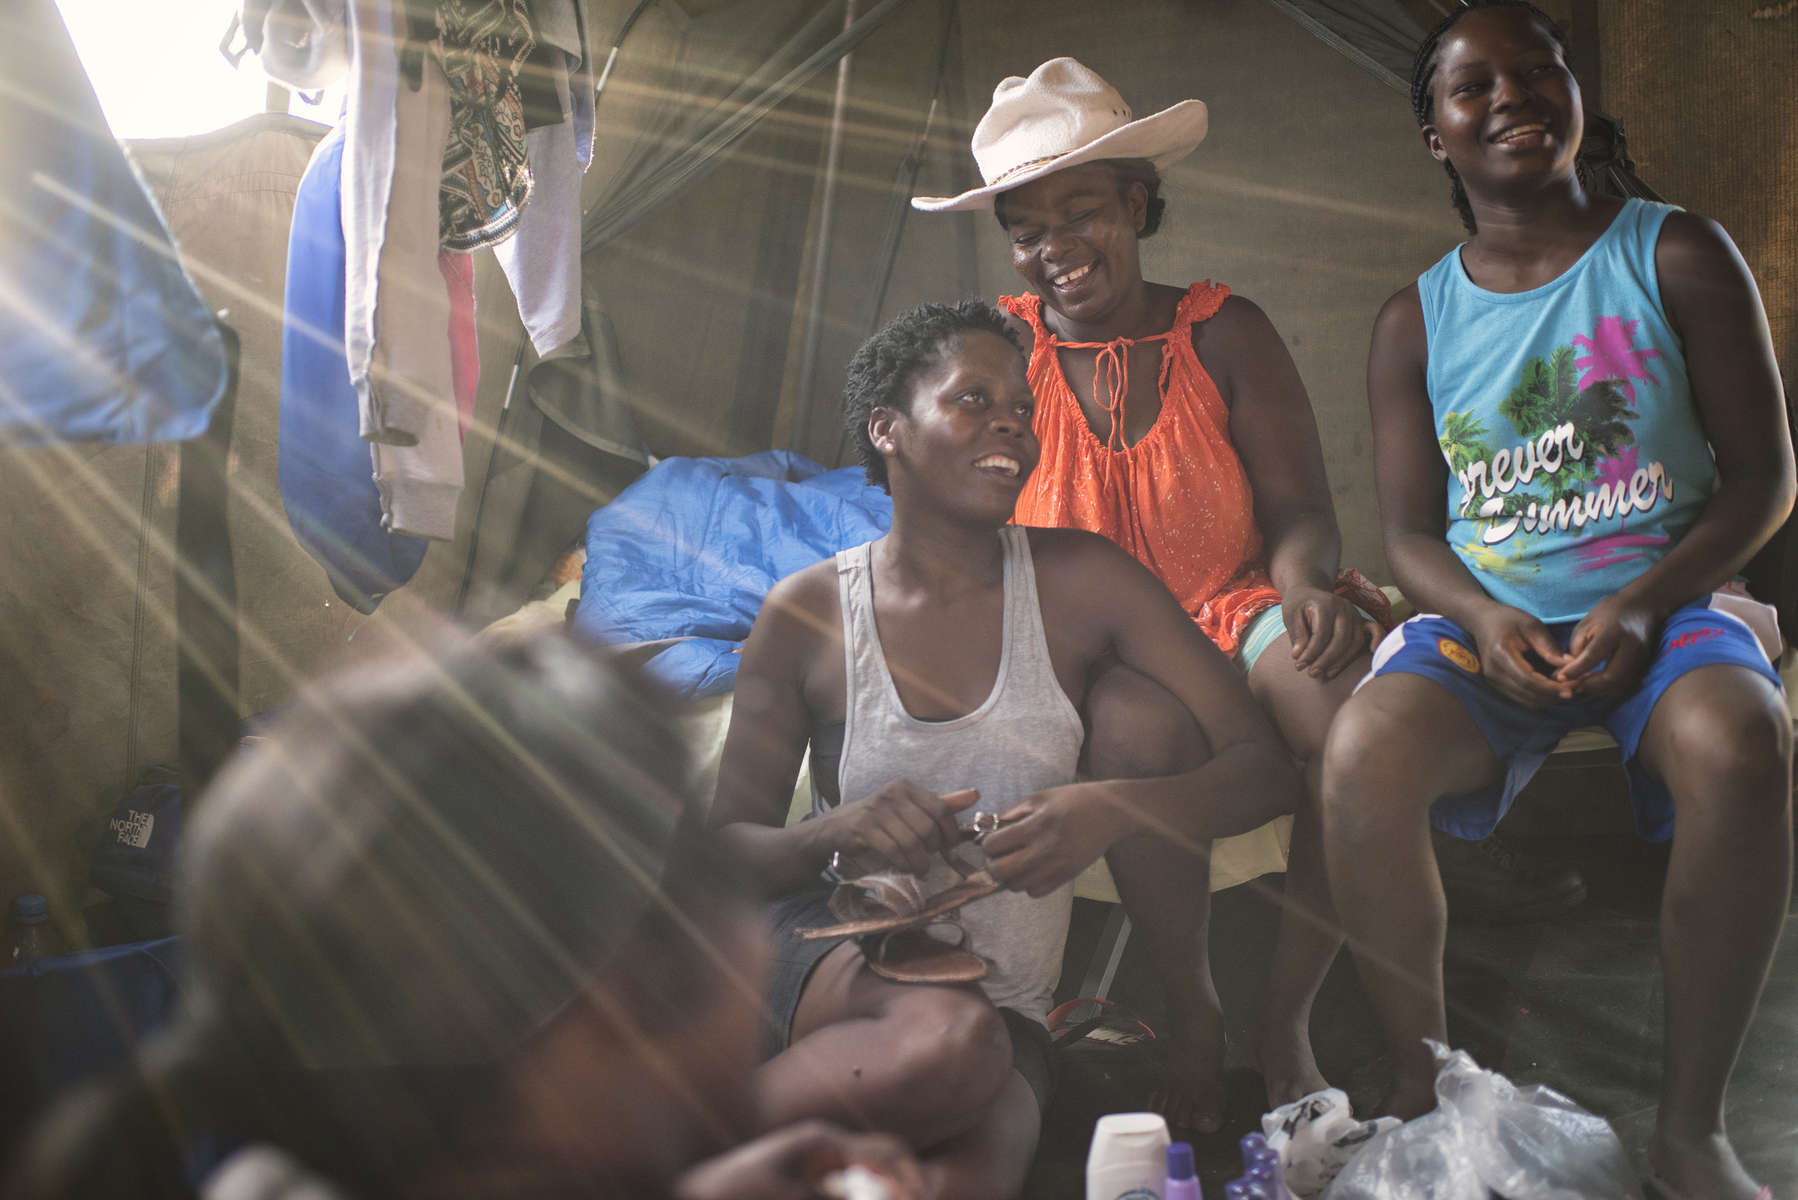 May 3, 2018: KANENGUERERE, ANGOLA - HALO deminers Florida Baptisa (L), Joana Carlos (C), Beatriz Chawayaca, and Cristina Praia relax in their tent after work.  Because the women have limited time off, and most of them have children that the need to spend time with, some of the deminers, including Joana,  take orders for things that the others might want to buy at he camps - everything from fancy underwear and sandals to hair for braiding and perfume to false nails and nail polish, and the women can buy them in the afternoons after a full day's work clearing anti-personnel mines in Kanenguerere.  The area was mined during the civil war by government forces to protect the nearby railway line that can be seen in the background, as well as various troop positions. It is currently used by roughly 170 people including village residents and nomadic herders - many of whom are young children - who pass through uncleared land every day.